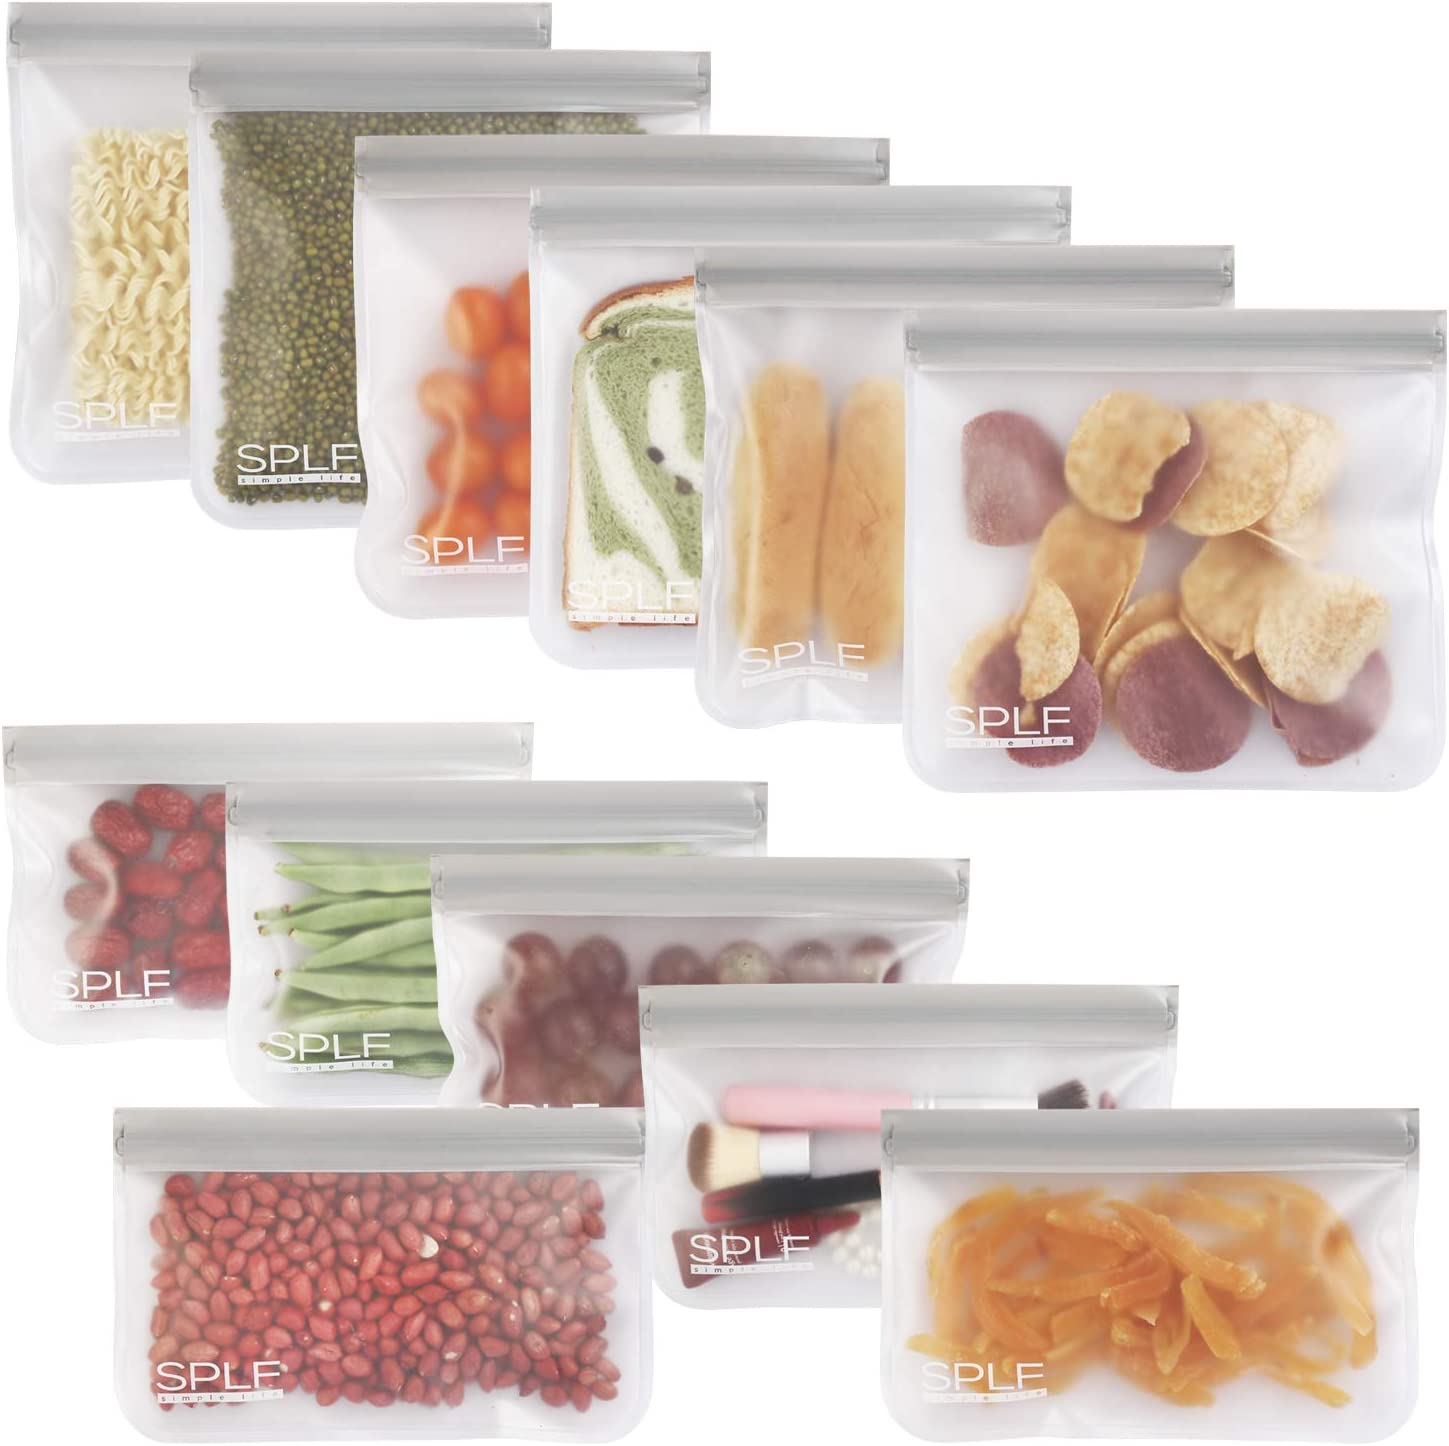 SPLF 12 Pack BPA FREE Reusable Storage Bags (6 Reusable Sandwich Bags, 6 Reusable Snack Bags), Extra Thick Freezer Bags Leakproof Silicone and Plastic Free Lunch Bags for Food Storage